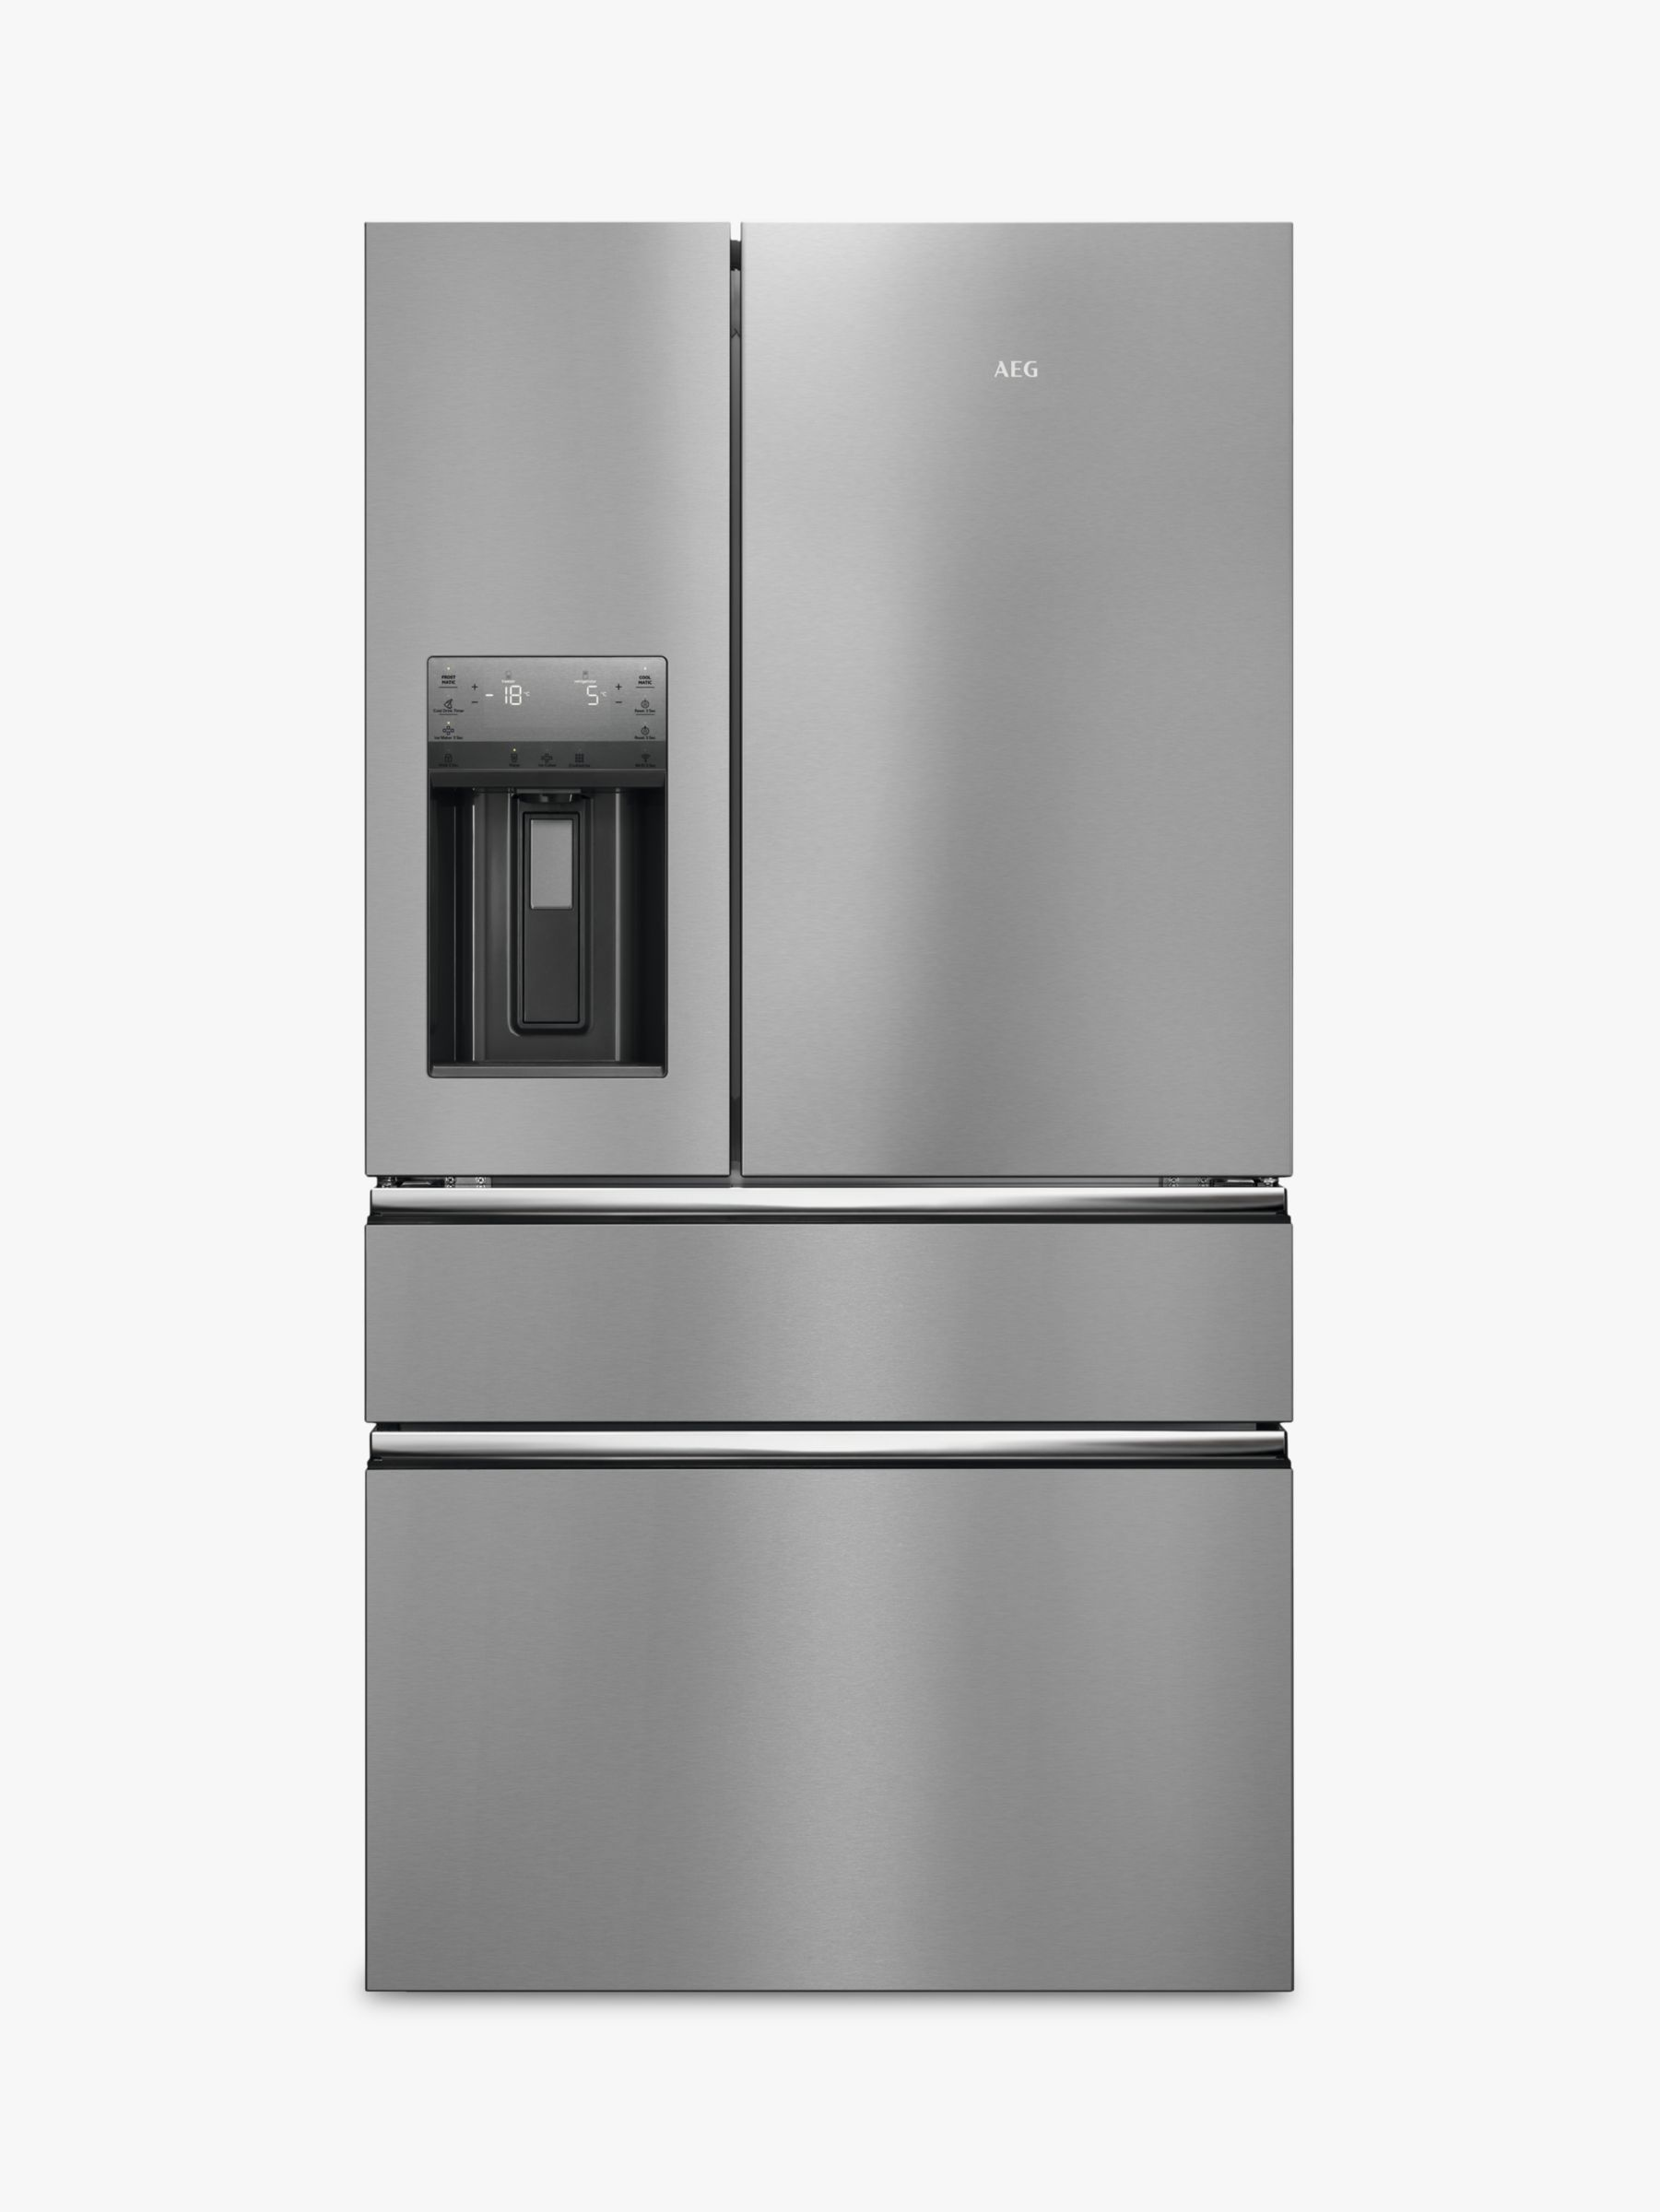 AEG AEG RMB96719CX American fridge Freezer, A+ Energy Rating, 91.3cm Wide, Silver